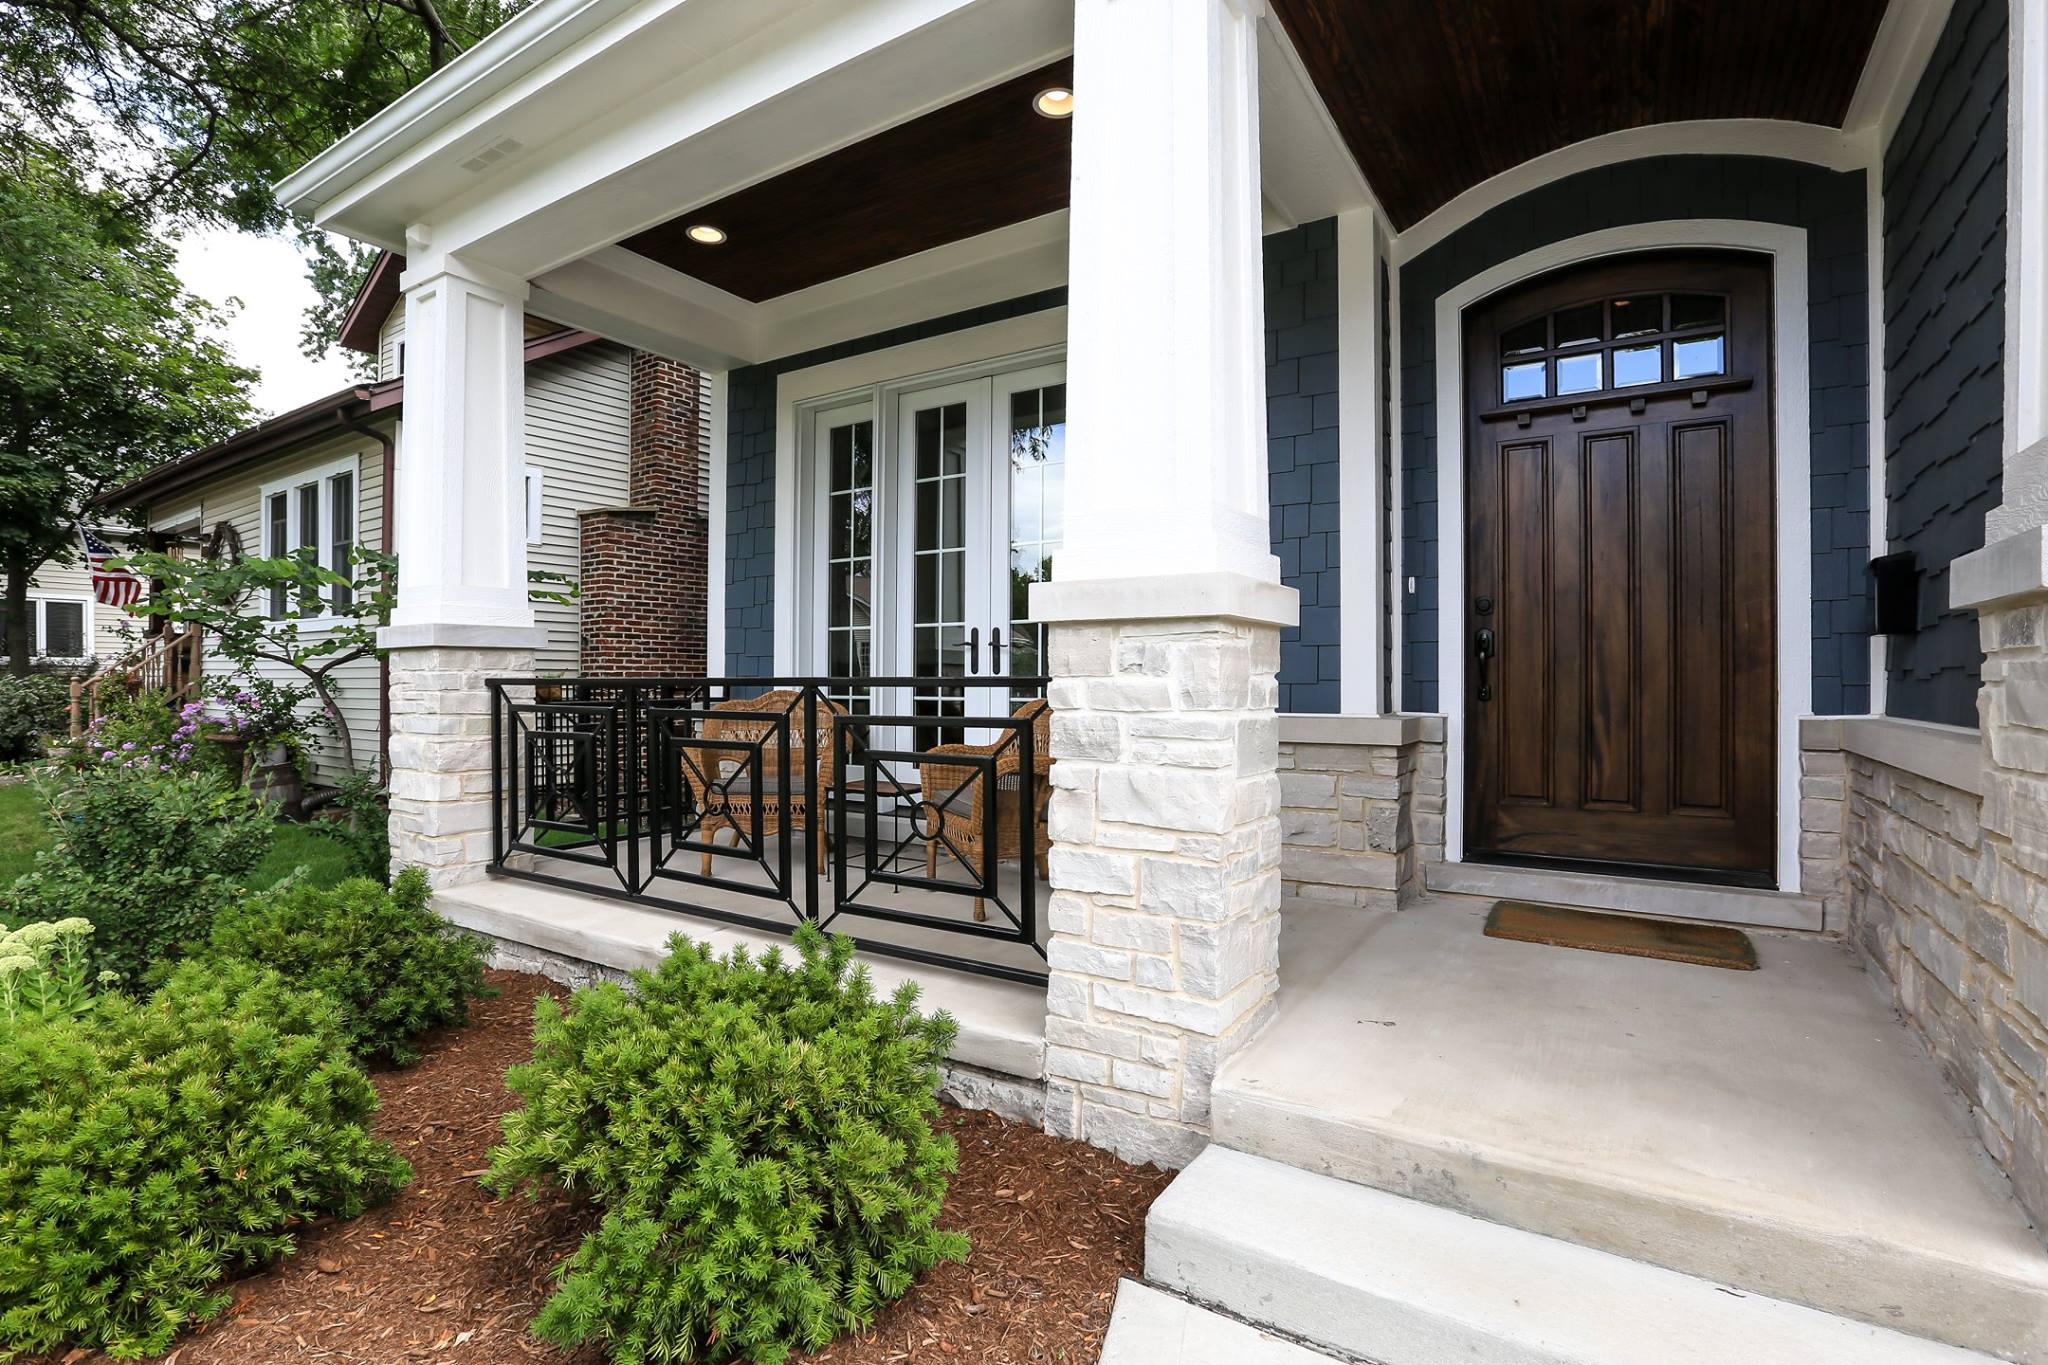 Dark blue siding with dark brown stained front door, white trim and light colored stone veneer.